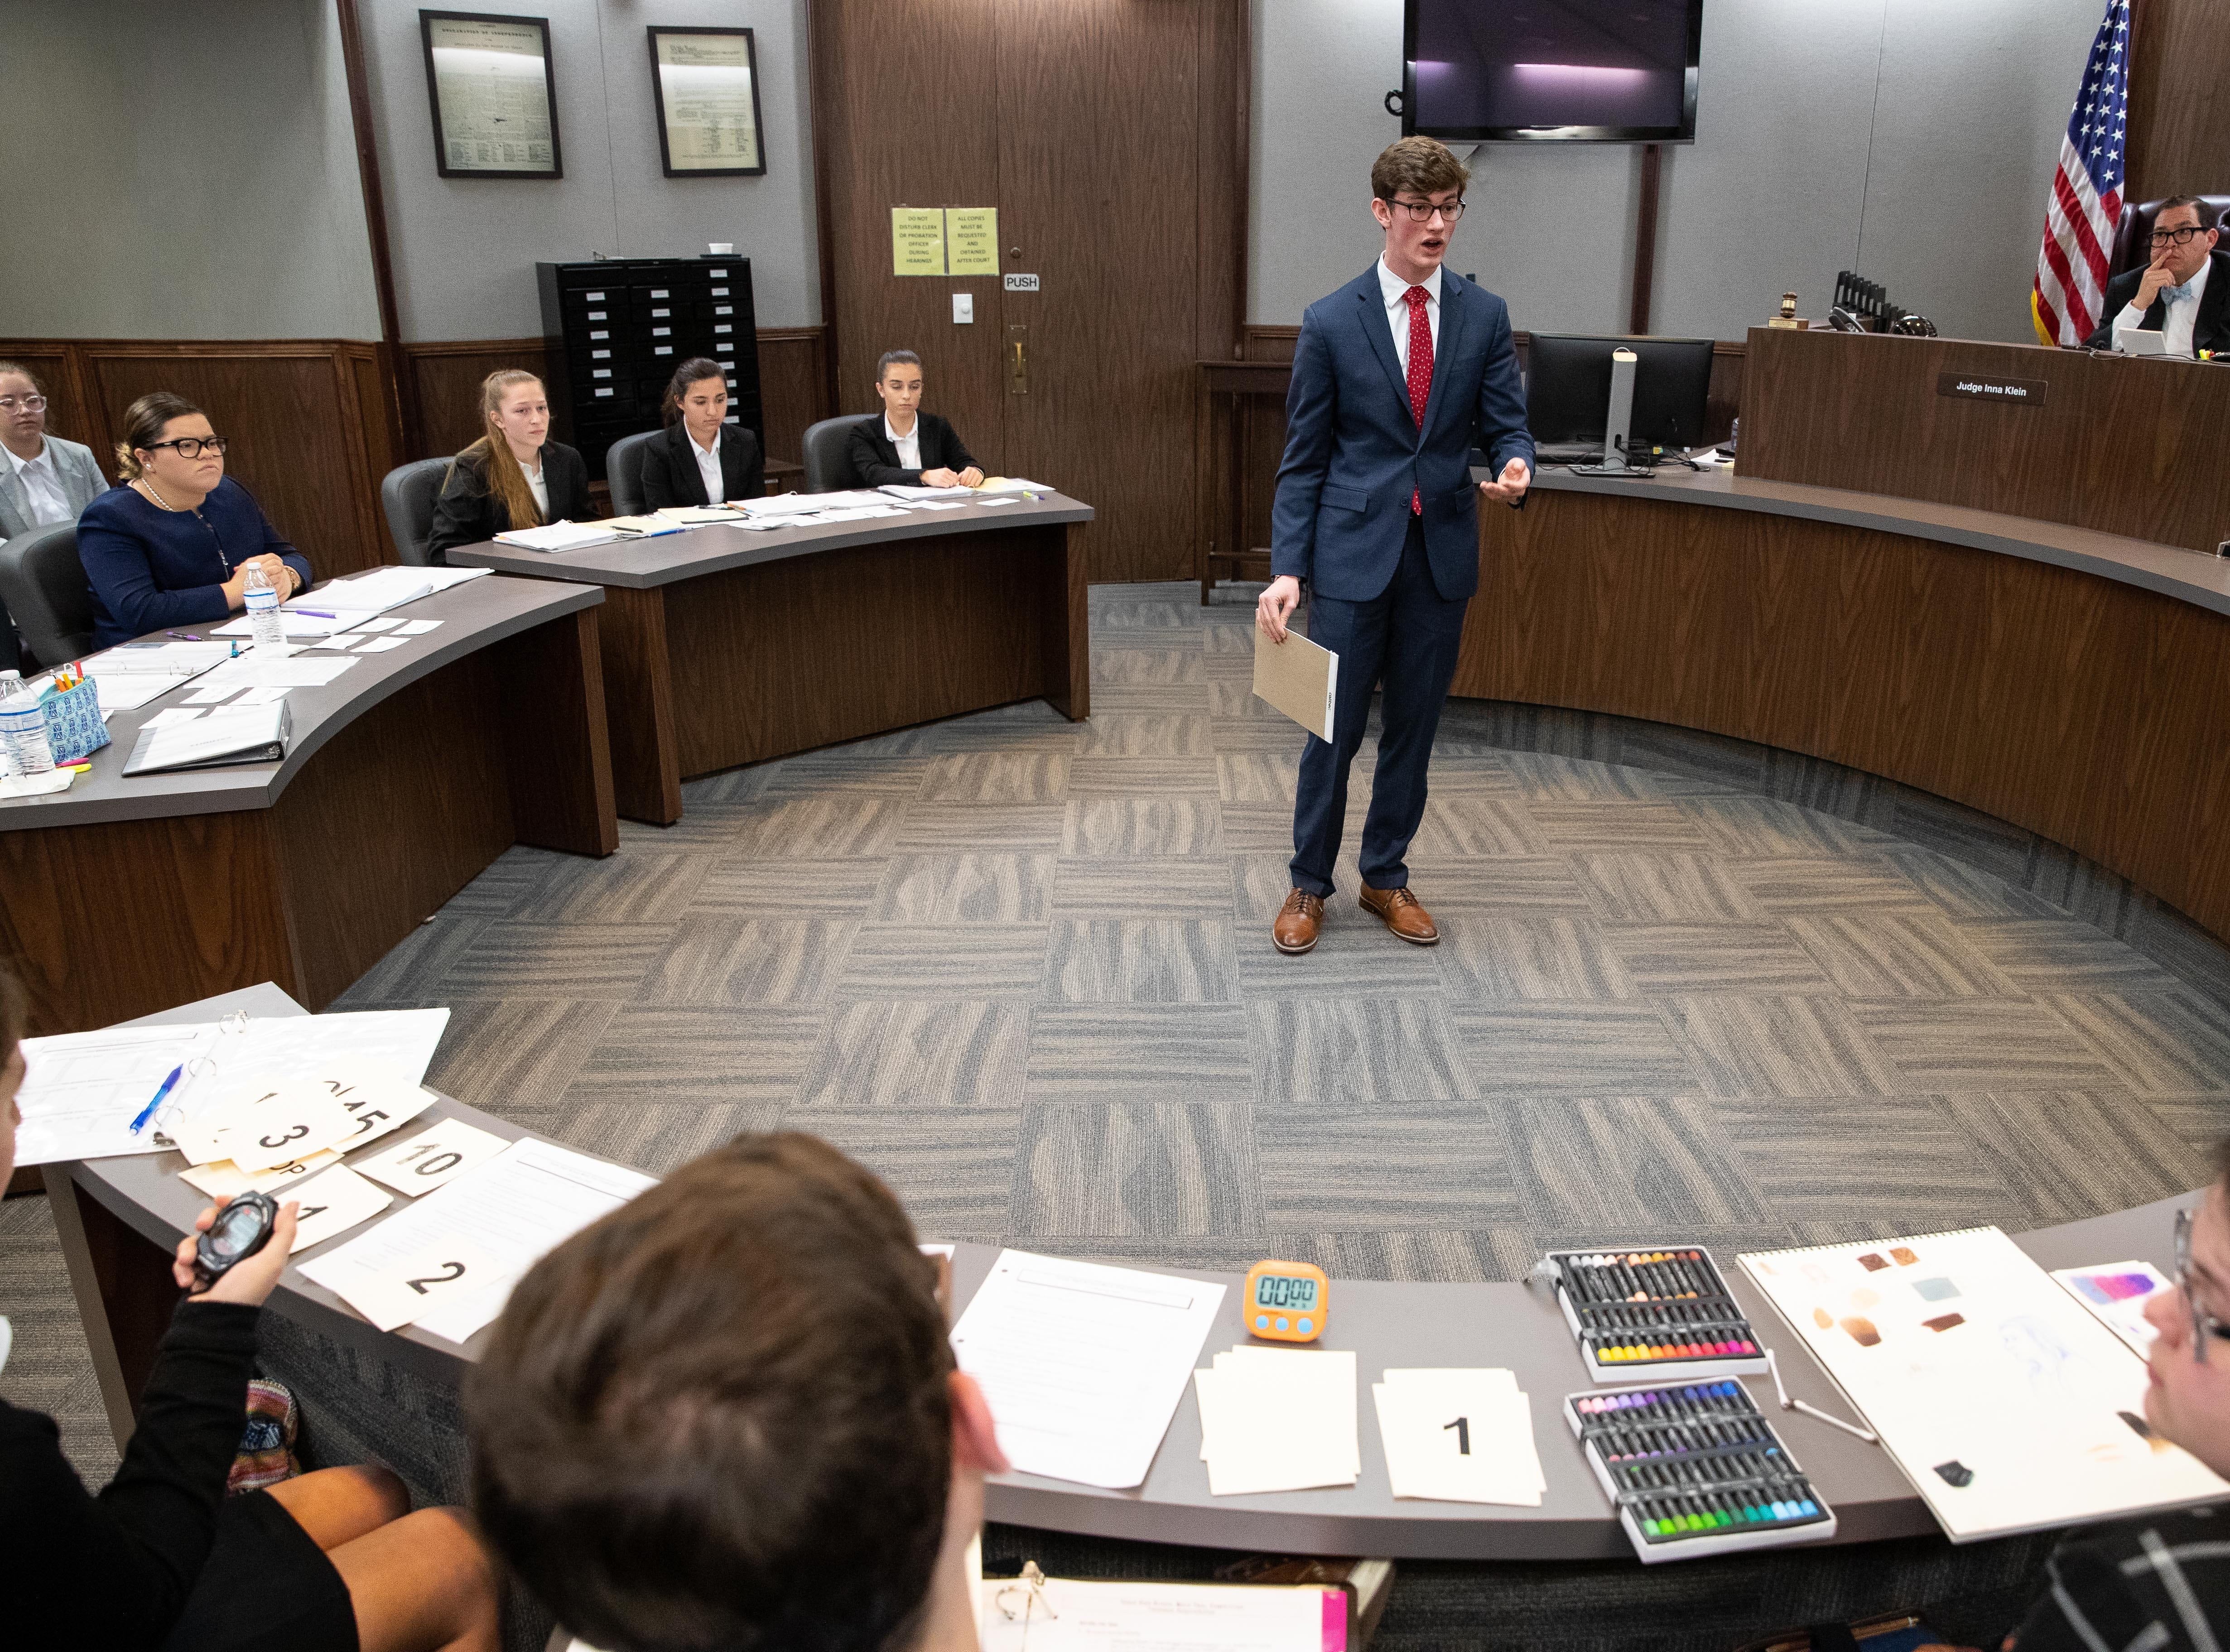 Tuloso Midway competes against London in a Mock Trial competition at the Nueces County Courthouse on Saturday, Feb. 2, 2019.